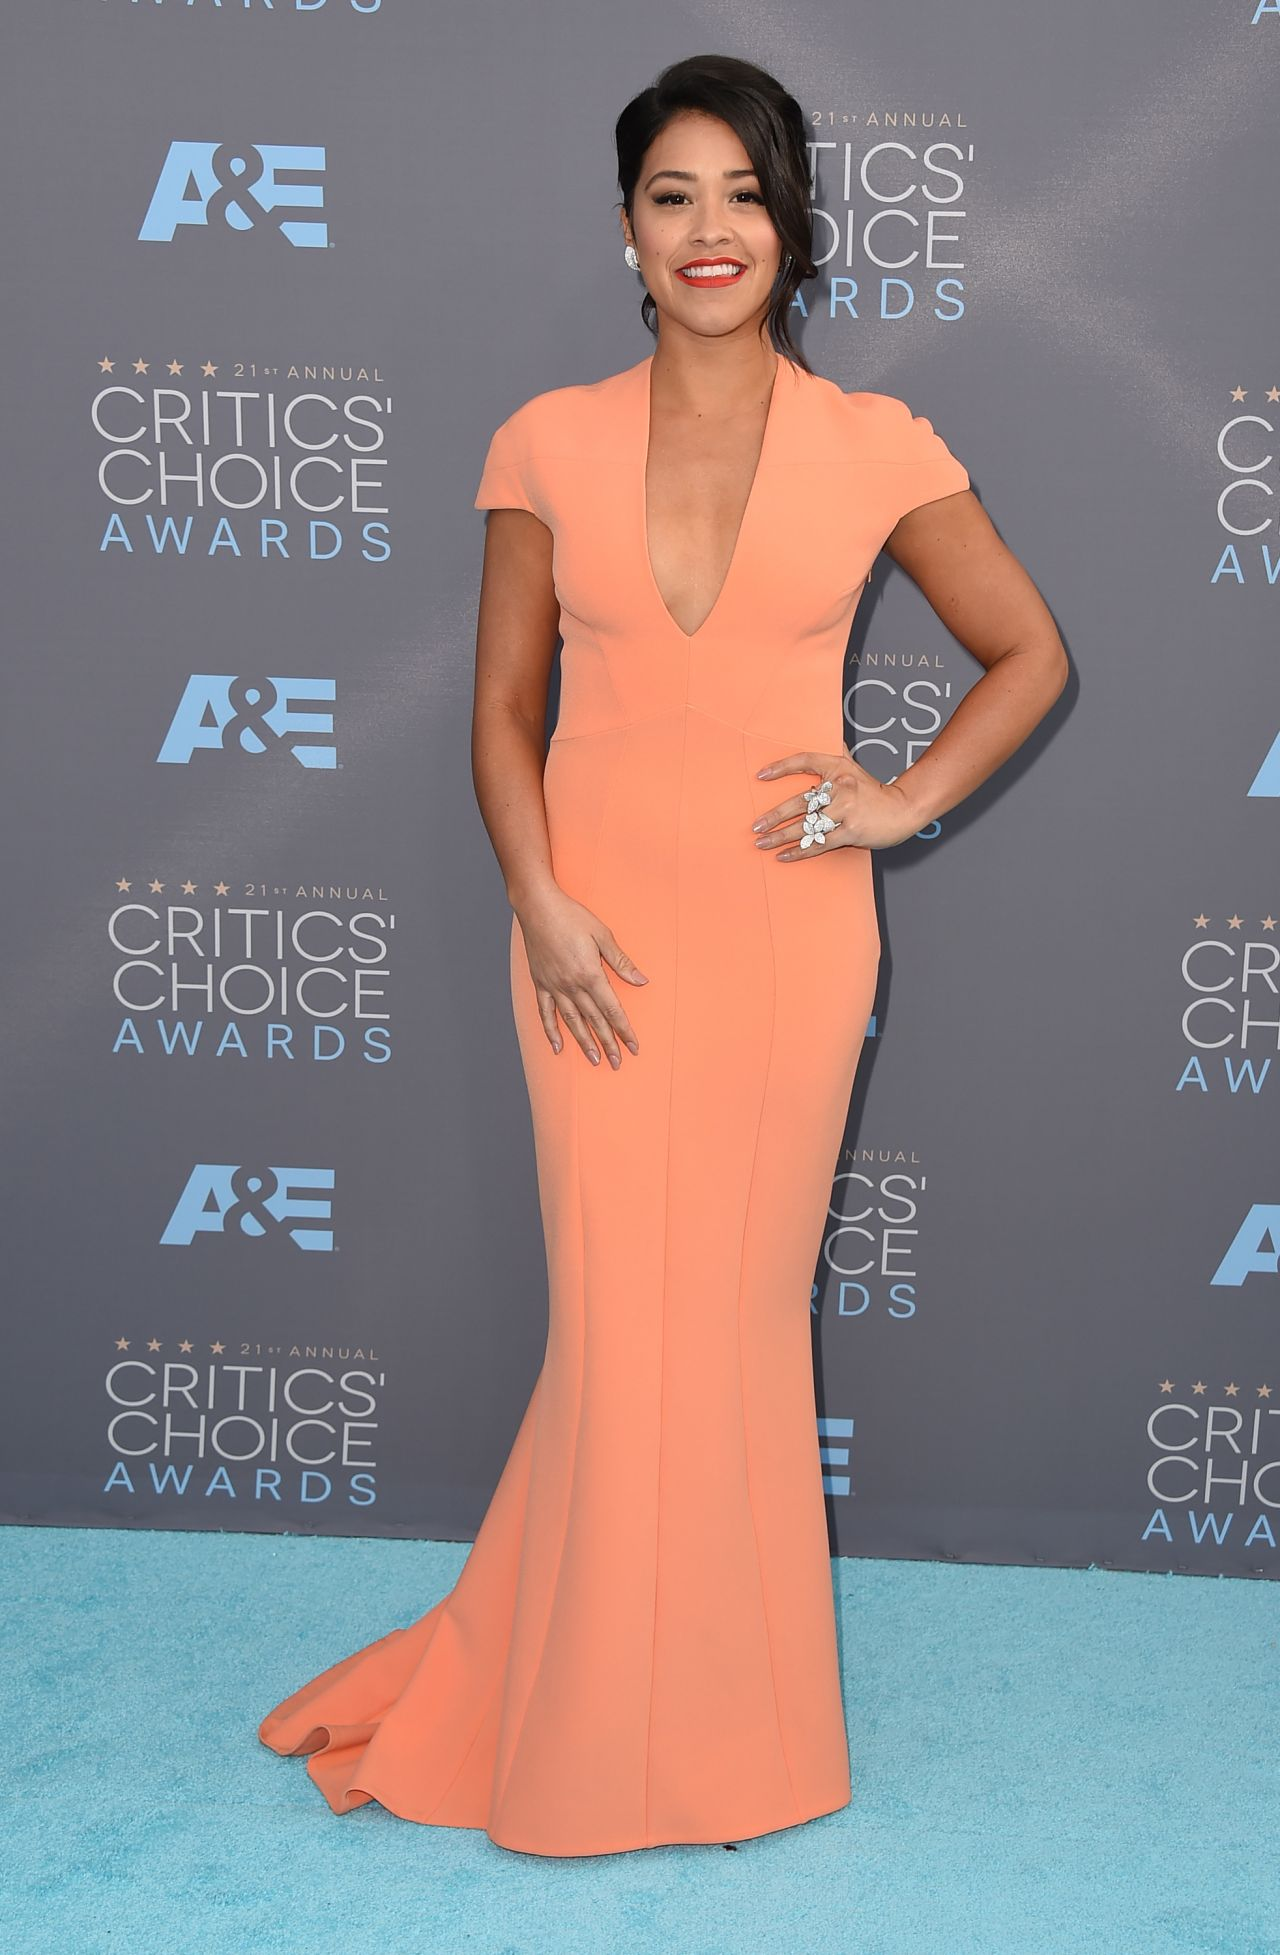 gina-rodriguez-2016-critics-choice-awards-in-santa-monica-2